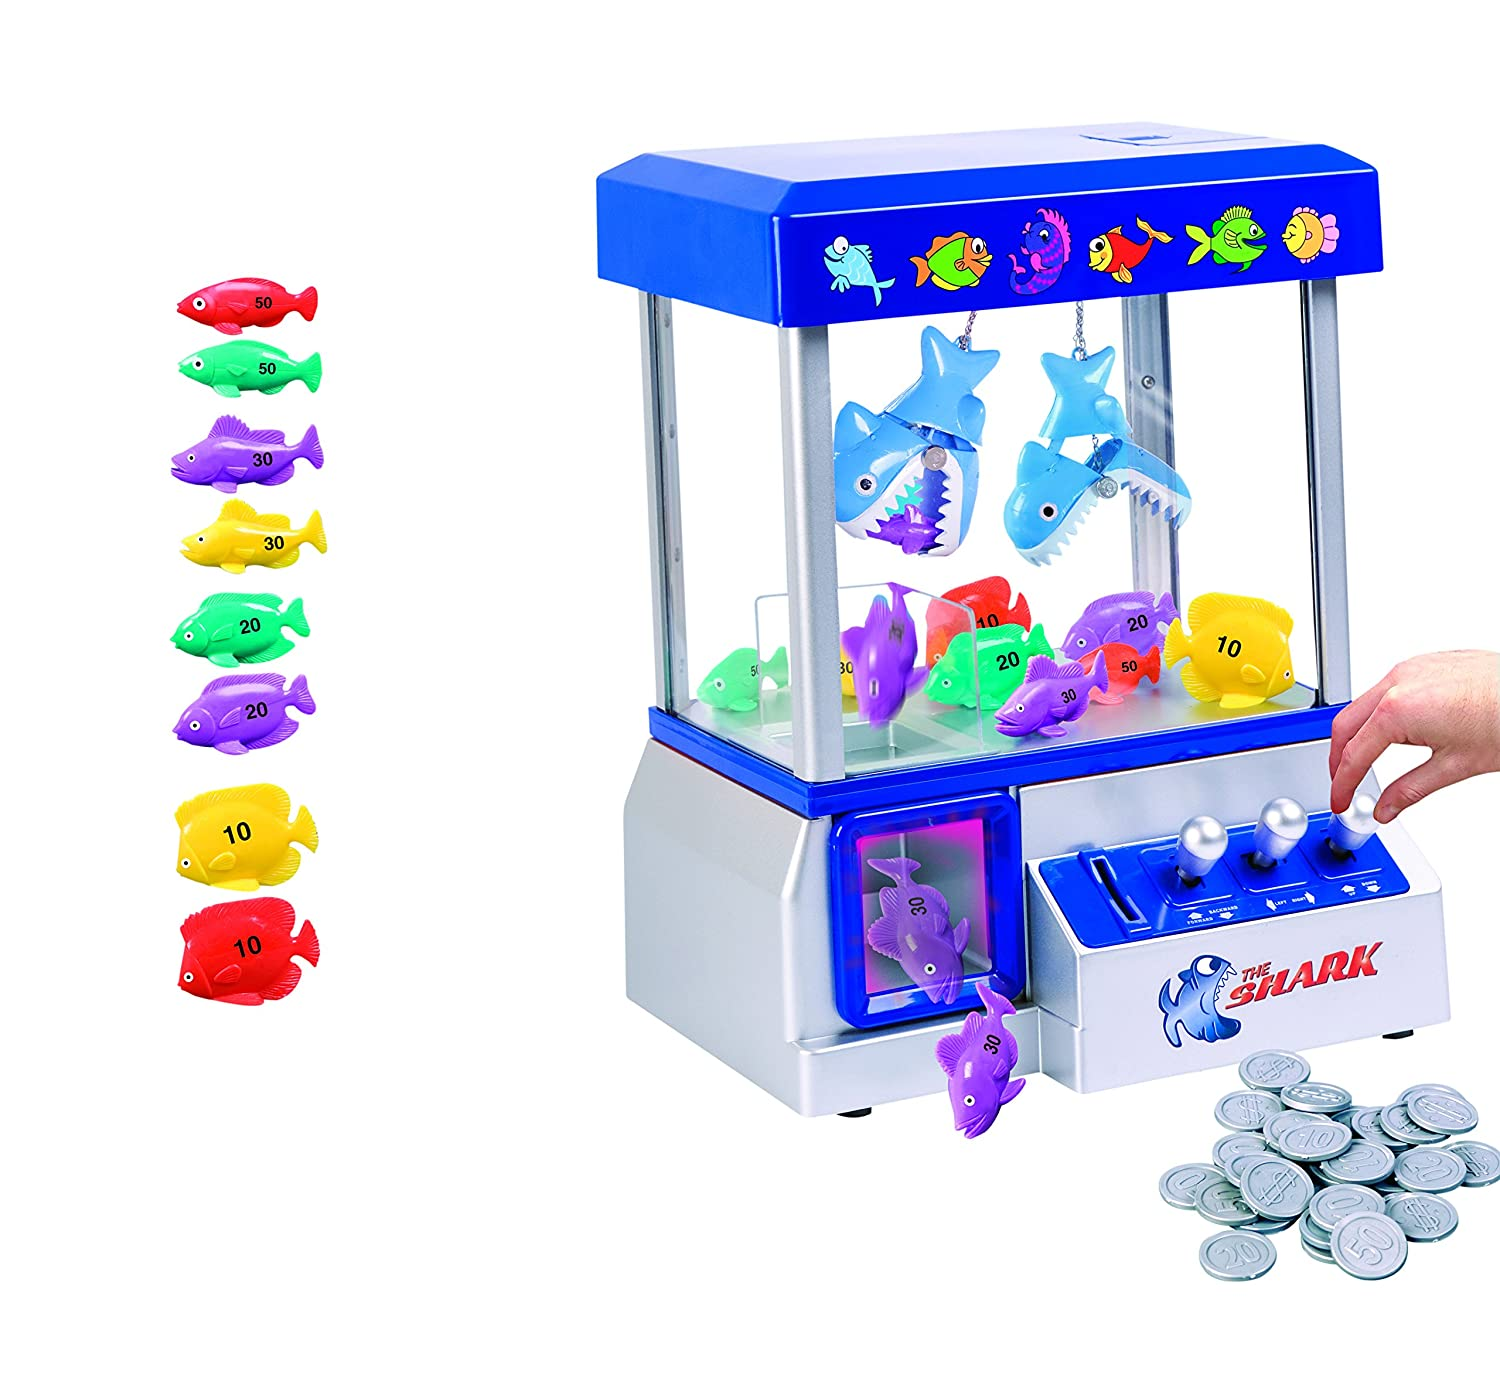 The Shark Arcade Claw Game Machine for Kids of All Ages (includes Tokens) - Crane Toy Game with Candy and Toys – Improves Coordination, Hours of Non-Stop Fun– Includes Carnival Music, and Lights Etna